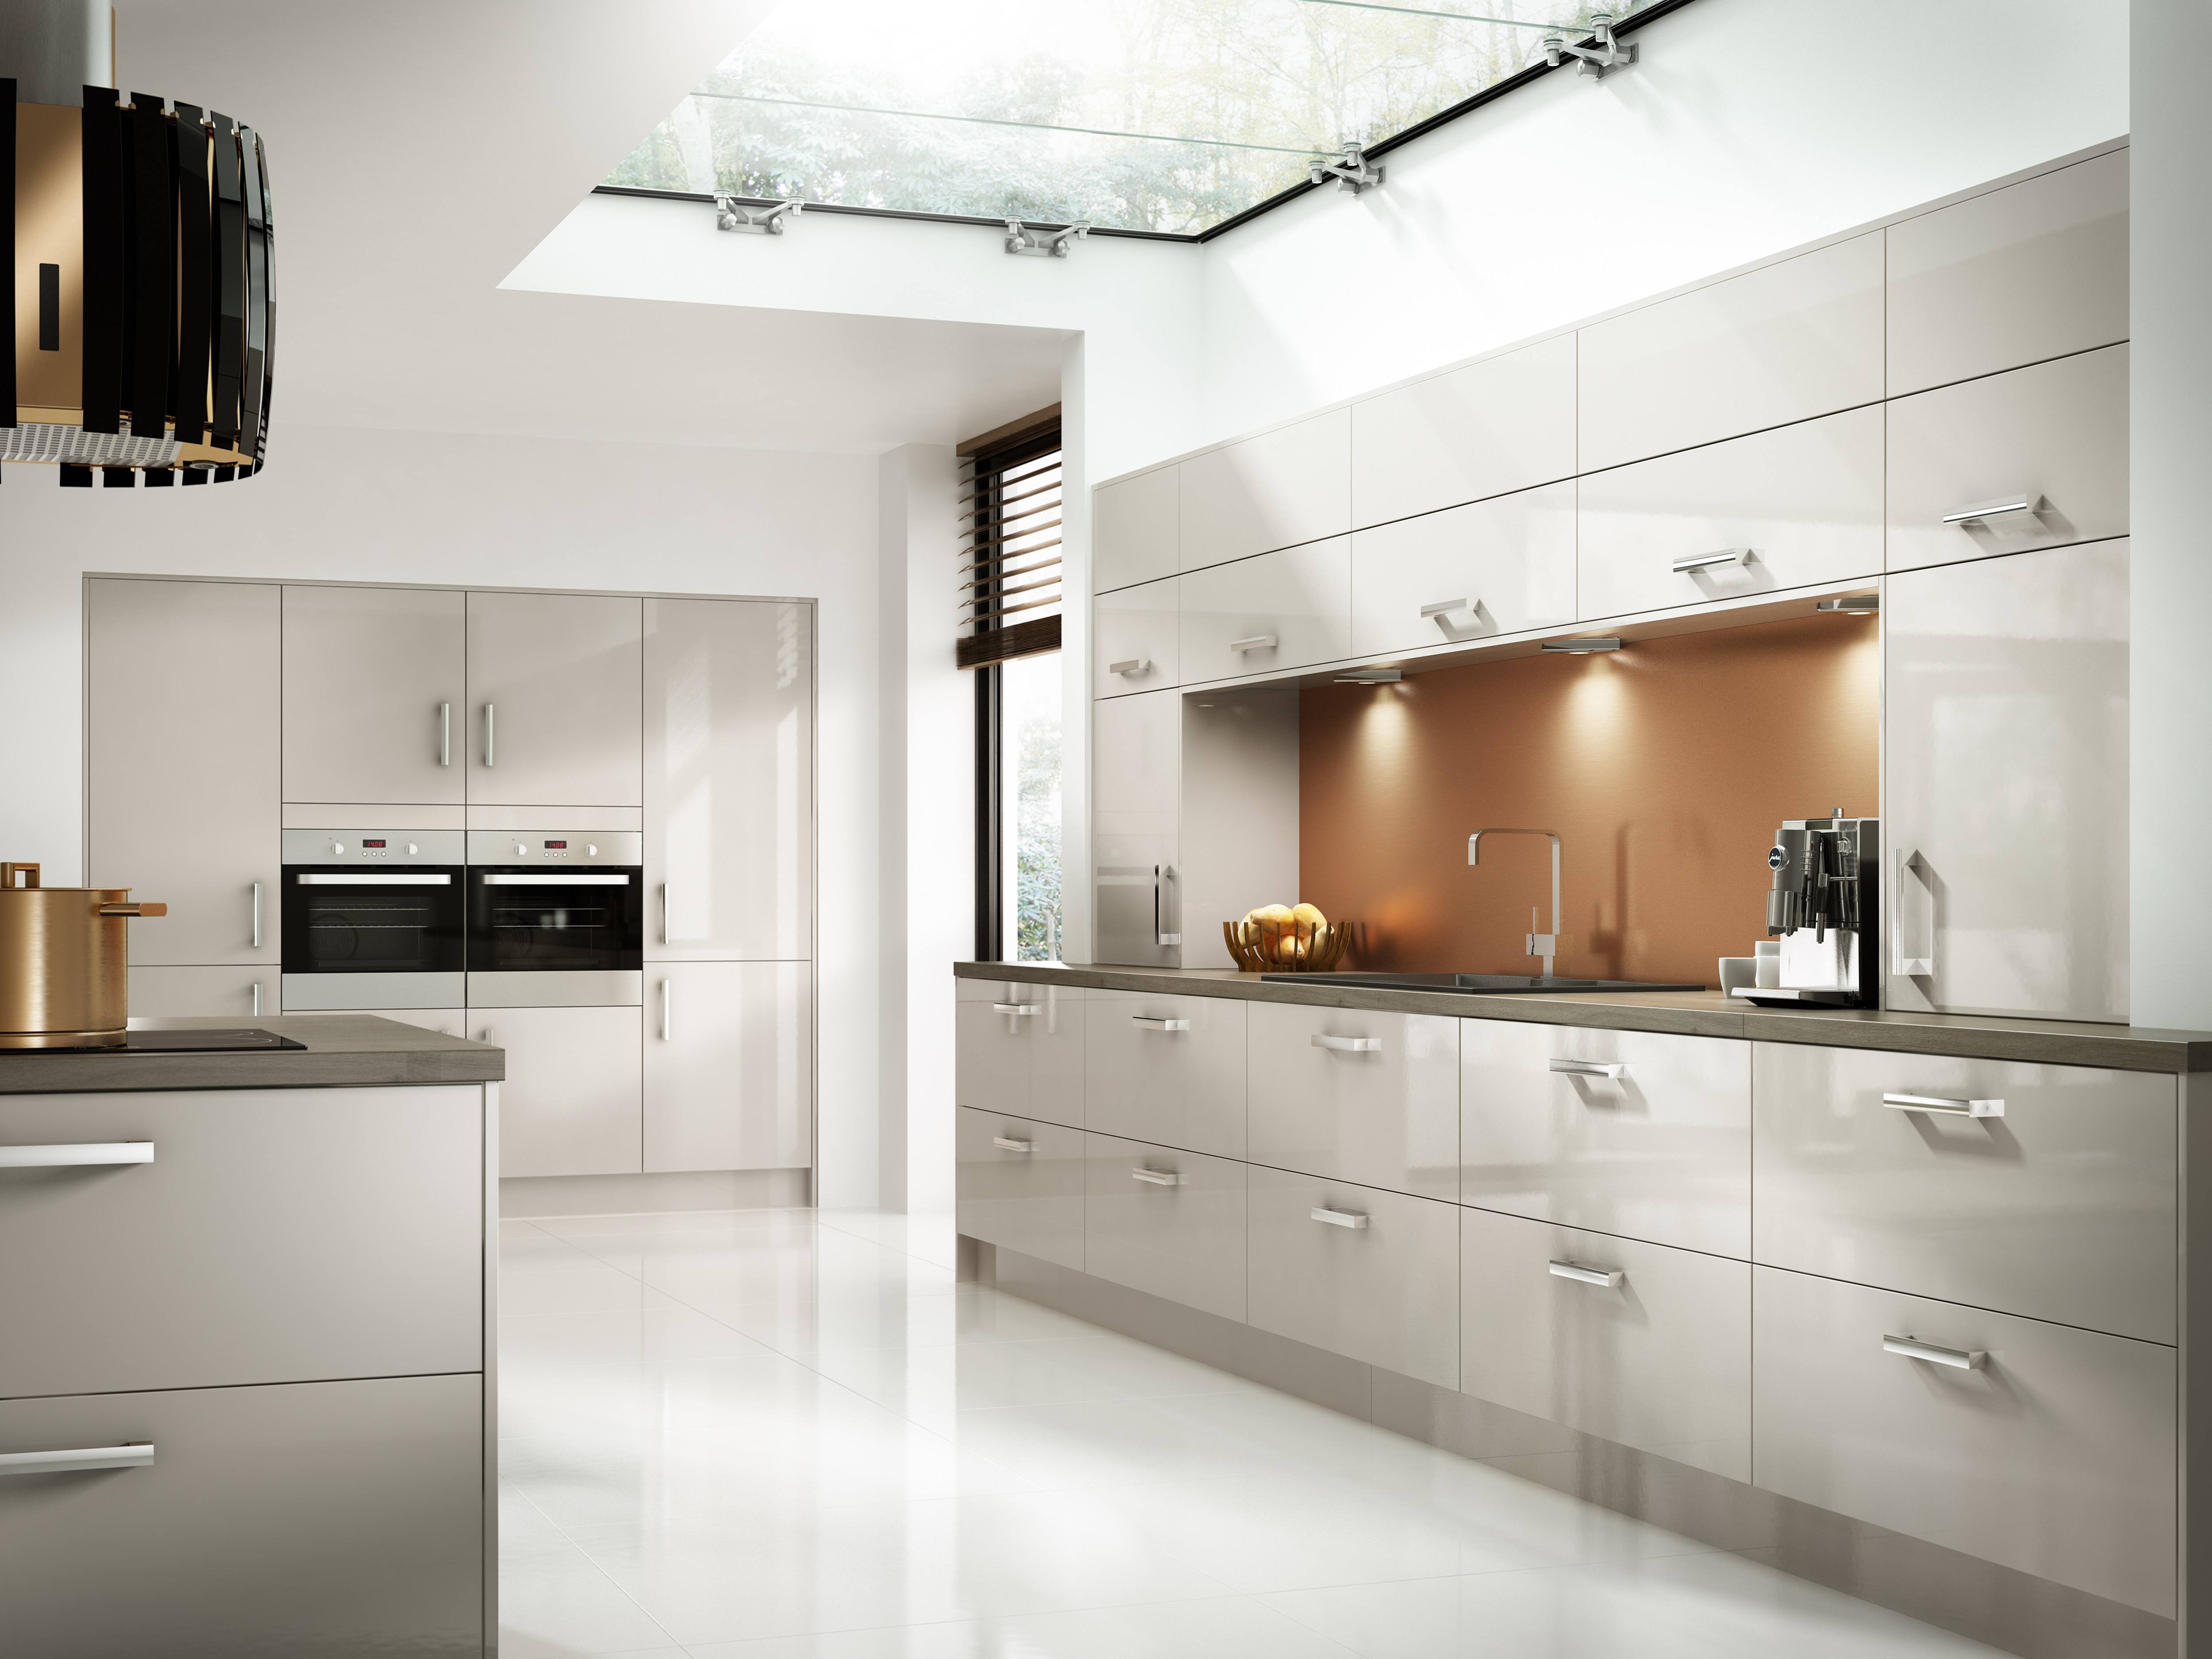 Kitchen Cupboard Painters Leicestershire Factory Kitchens Factory Kitchens Cheap Factory Kitchens